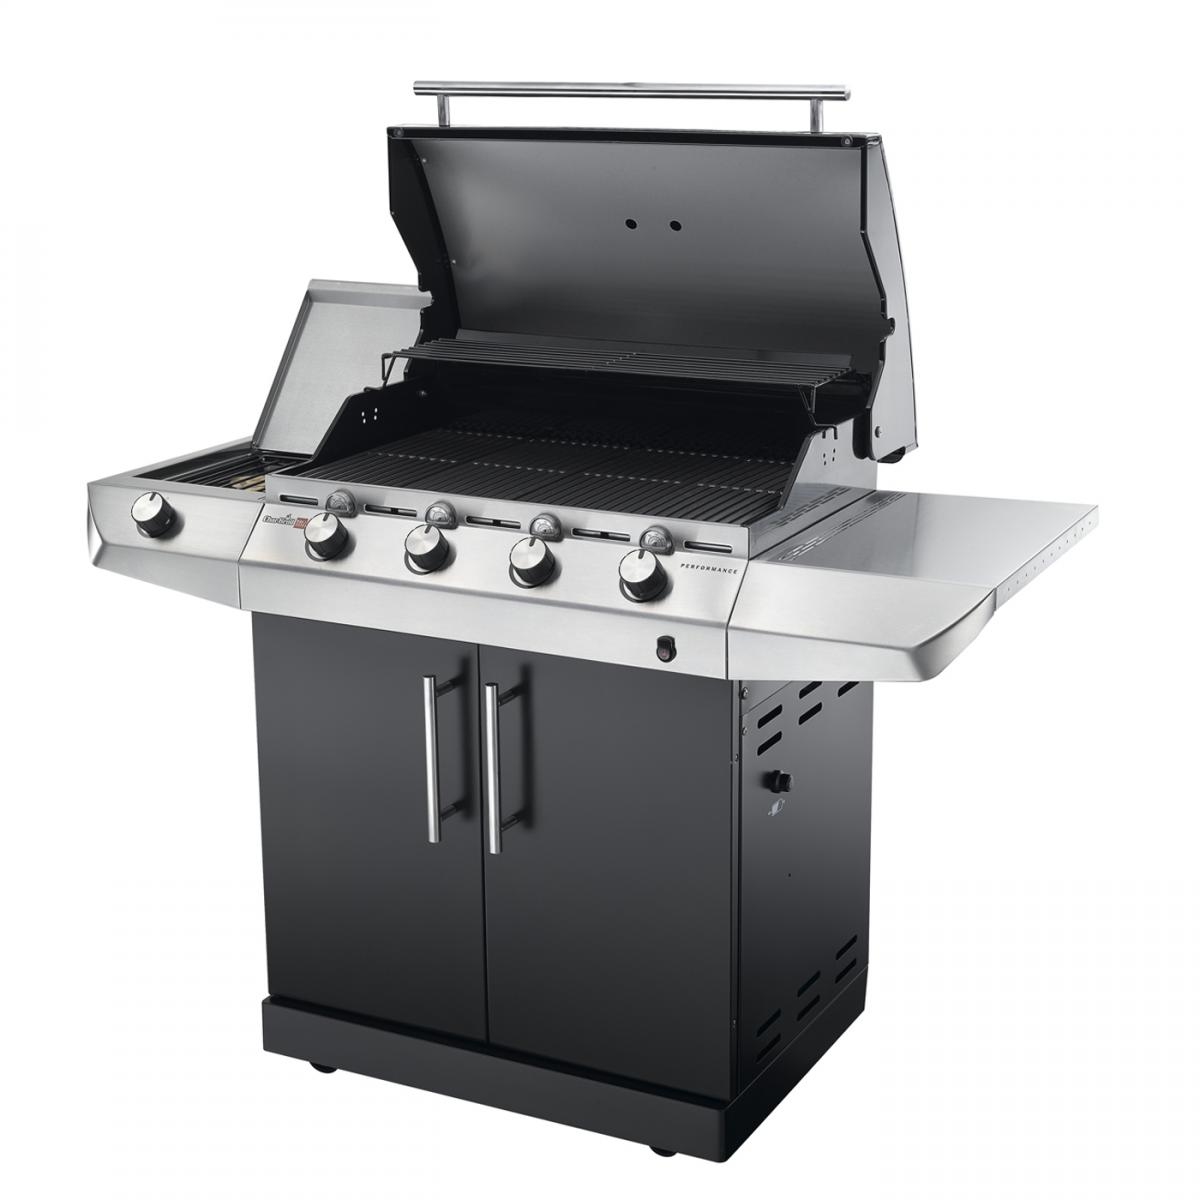 char broil performance t 47g black series bbq cover and. Black Bedroom Furniture Sets. Home Design Ideas